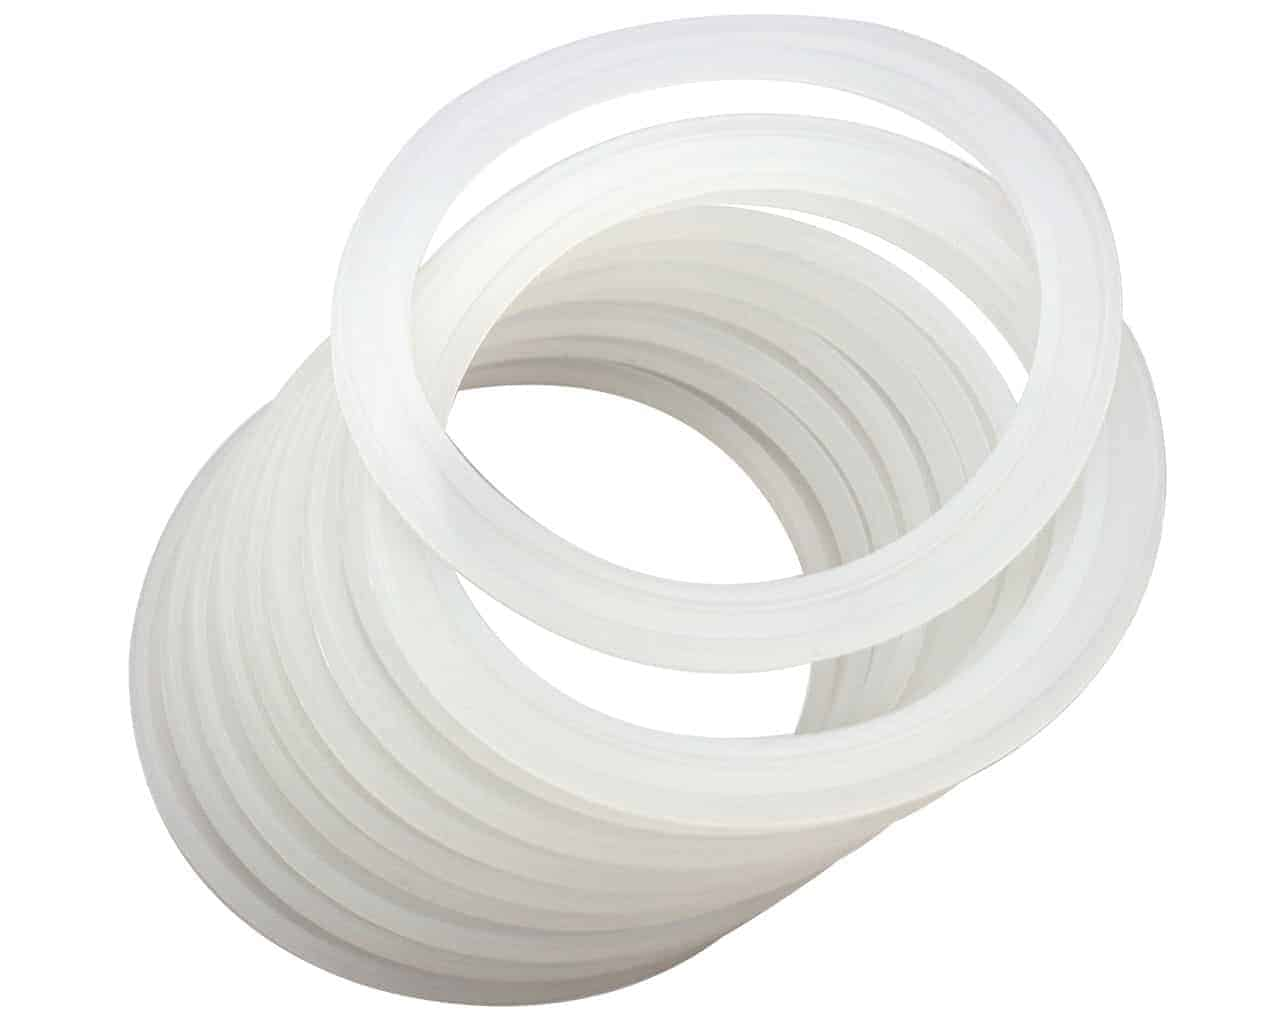 Platinum Silicone Sealing Rings Seals Gaskets Wide Mouth